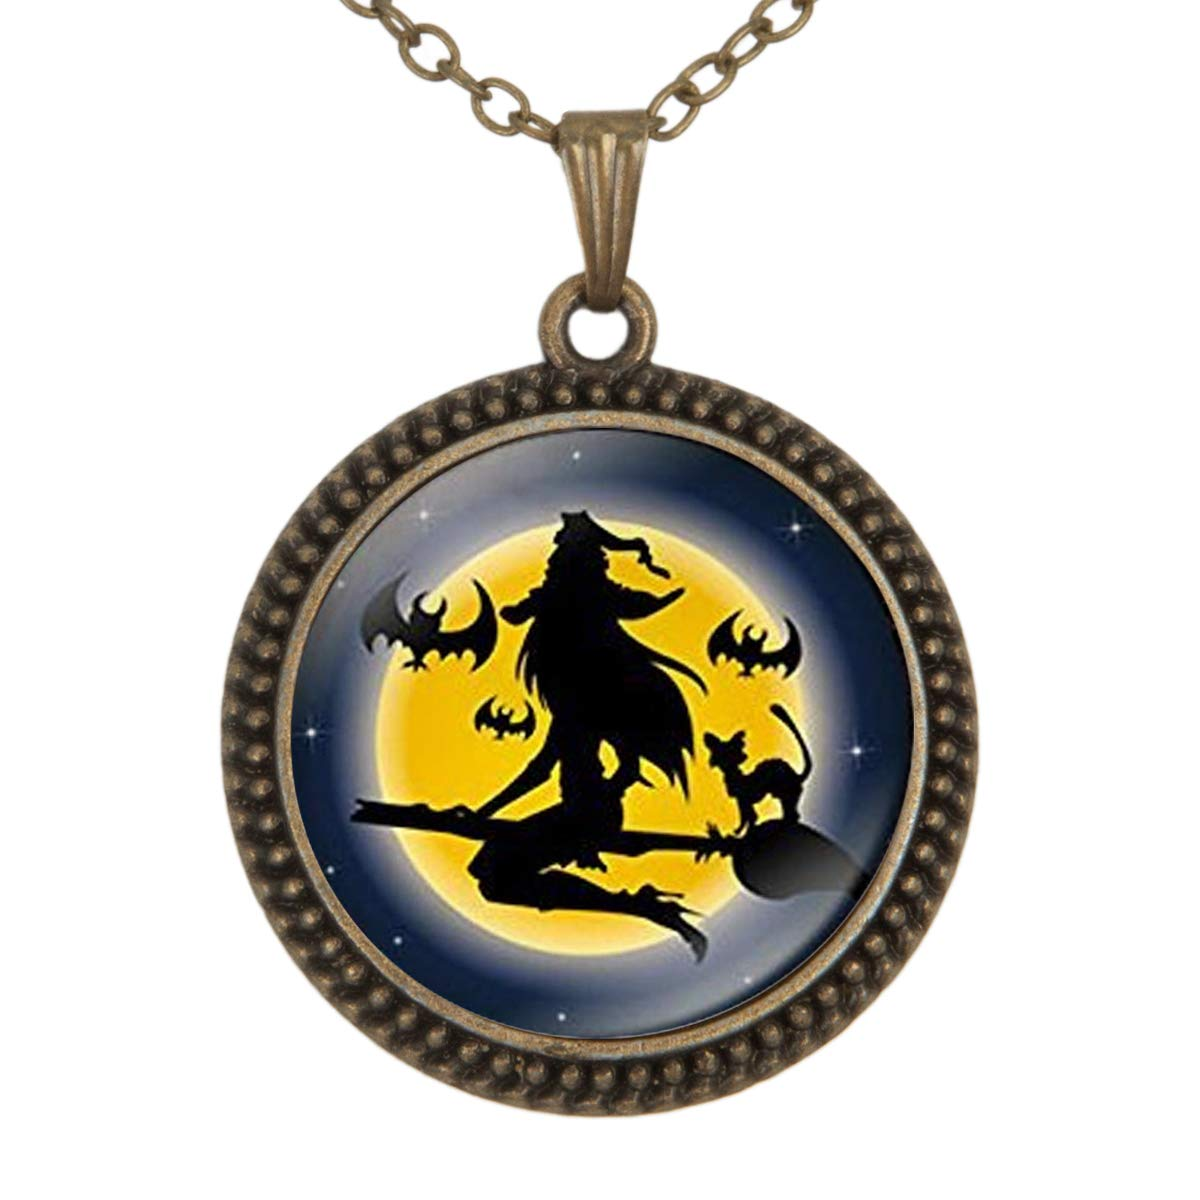 Lightrain Halloween Flying Witch Pendant Necklace Vintage Bronze Chain Statement Necklace Handmade Jewelry Gifts